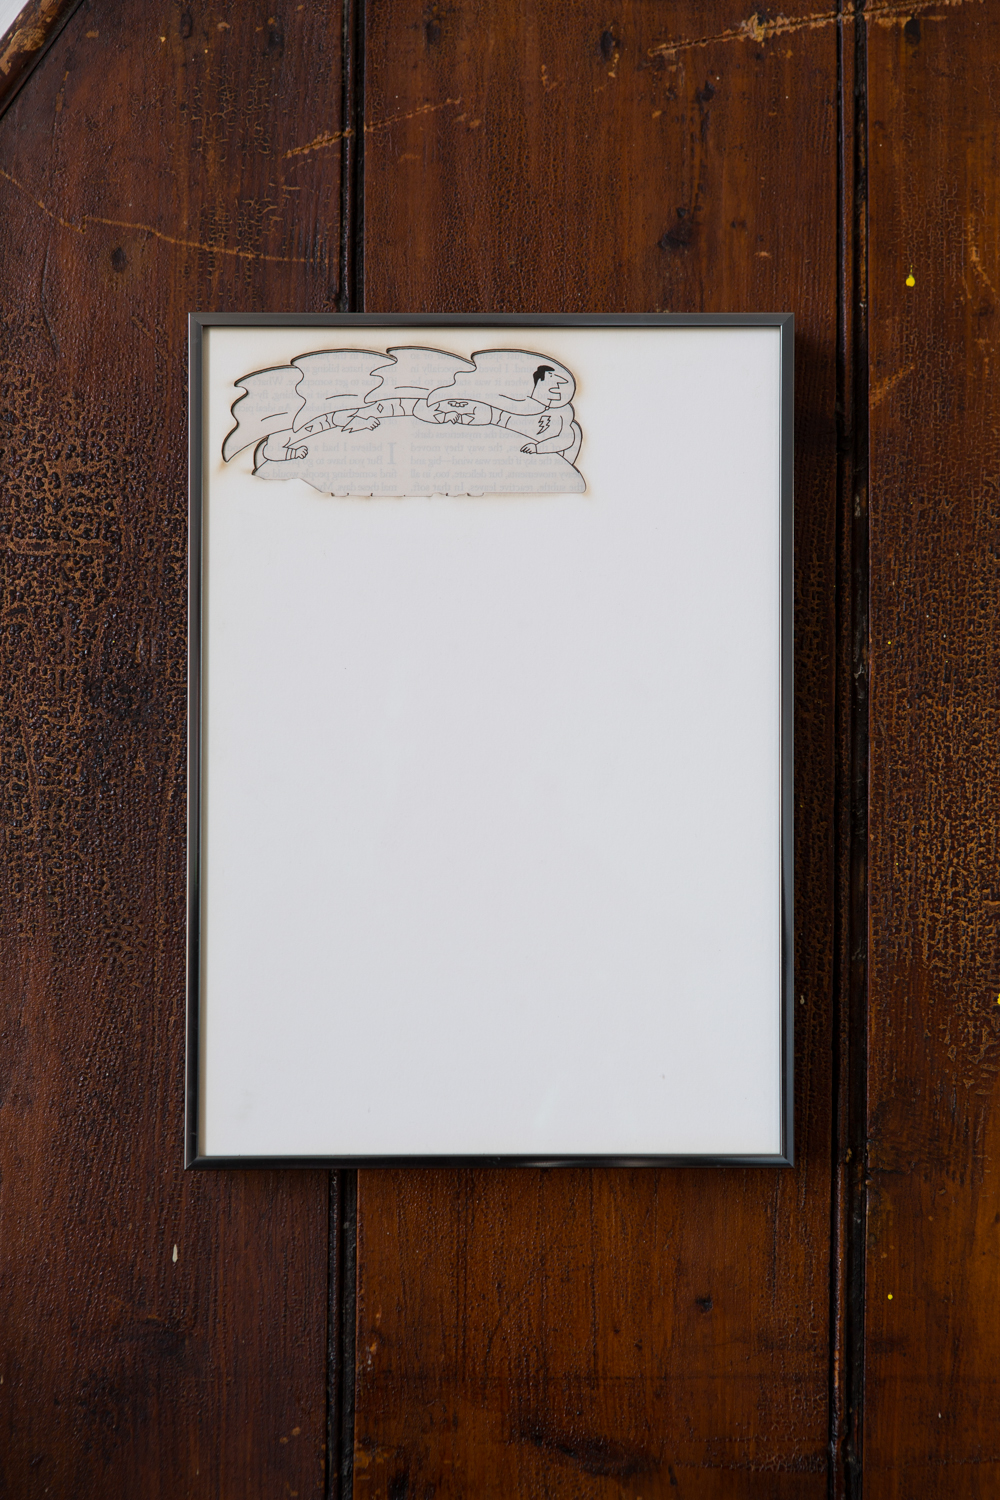 Zachary Susskind (CONFERENCE) Artifact: Language Barrier (Johan Rudolf Huber), 2014 Cotton and paper in artist frame 11 x 8 inches